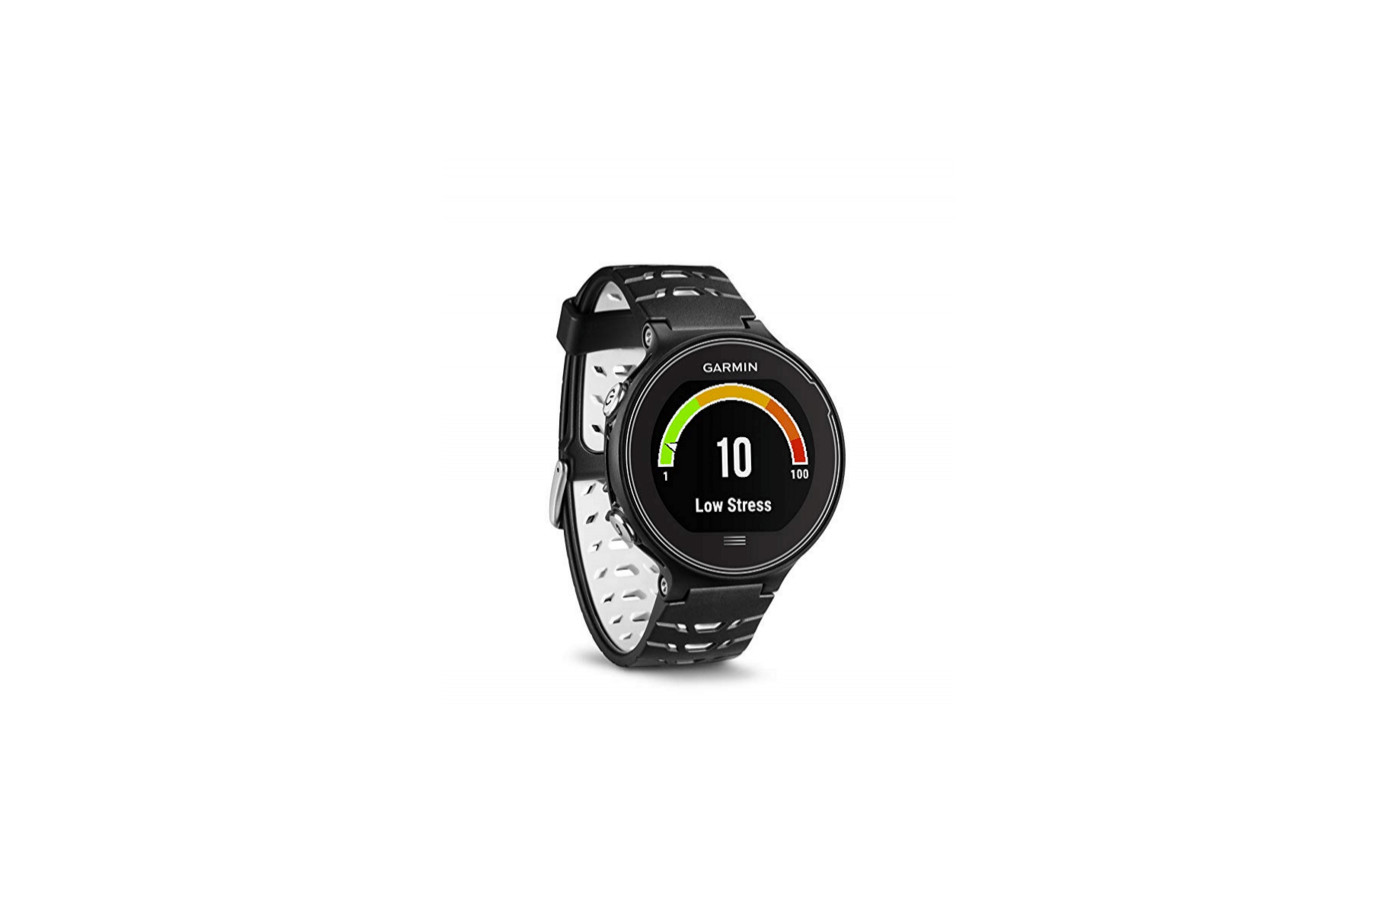 The Forerunner 630's heart rate monitor can be purchased separately